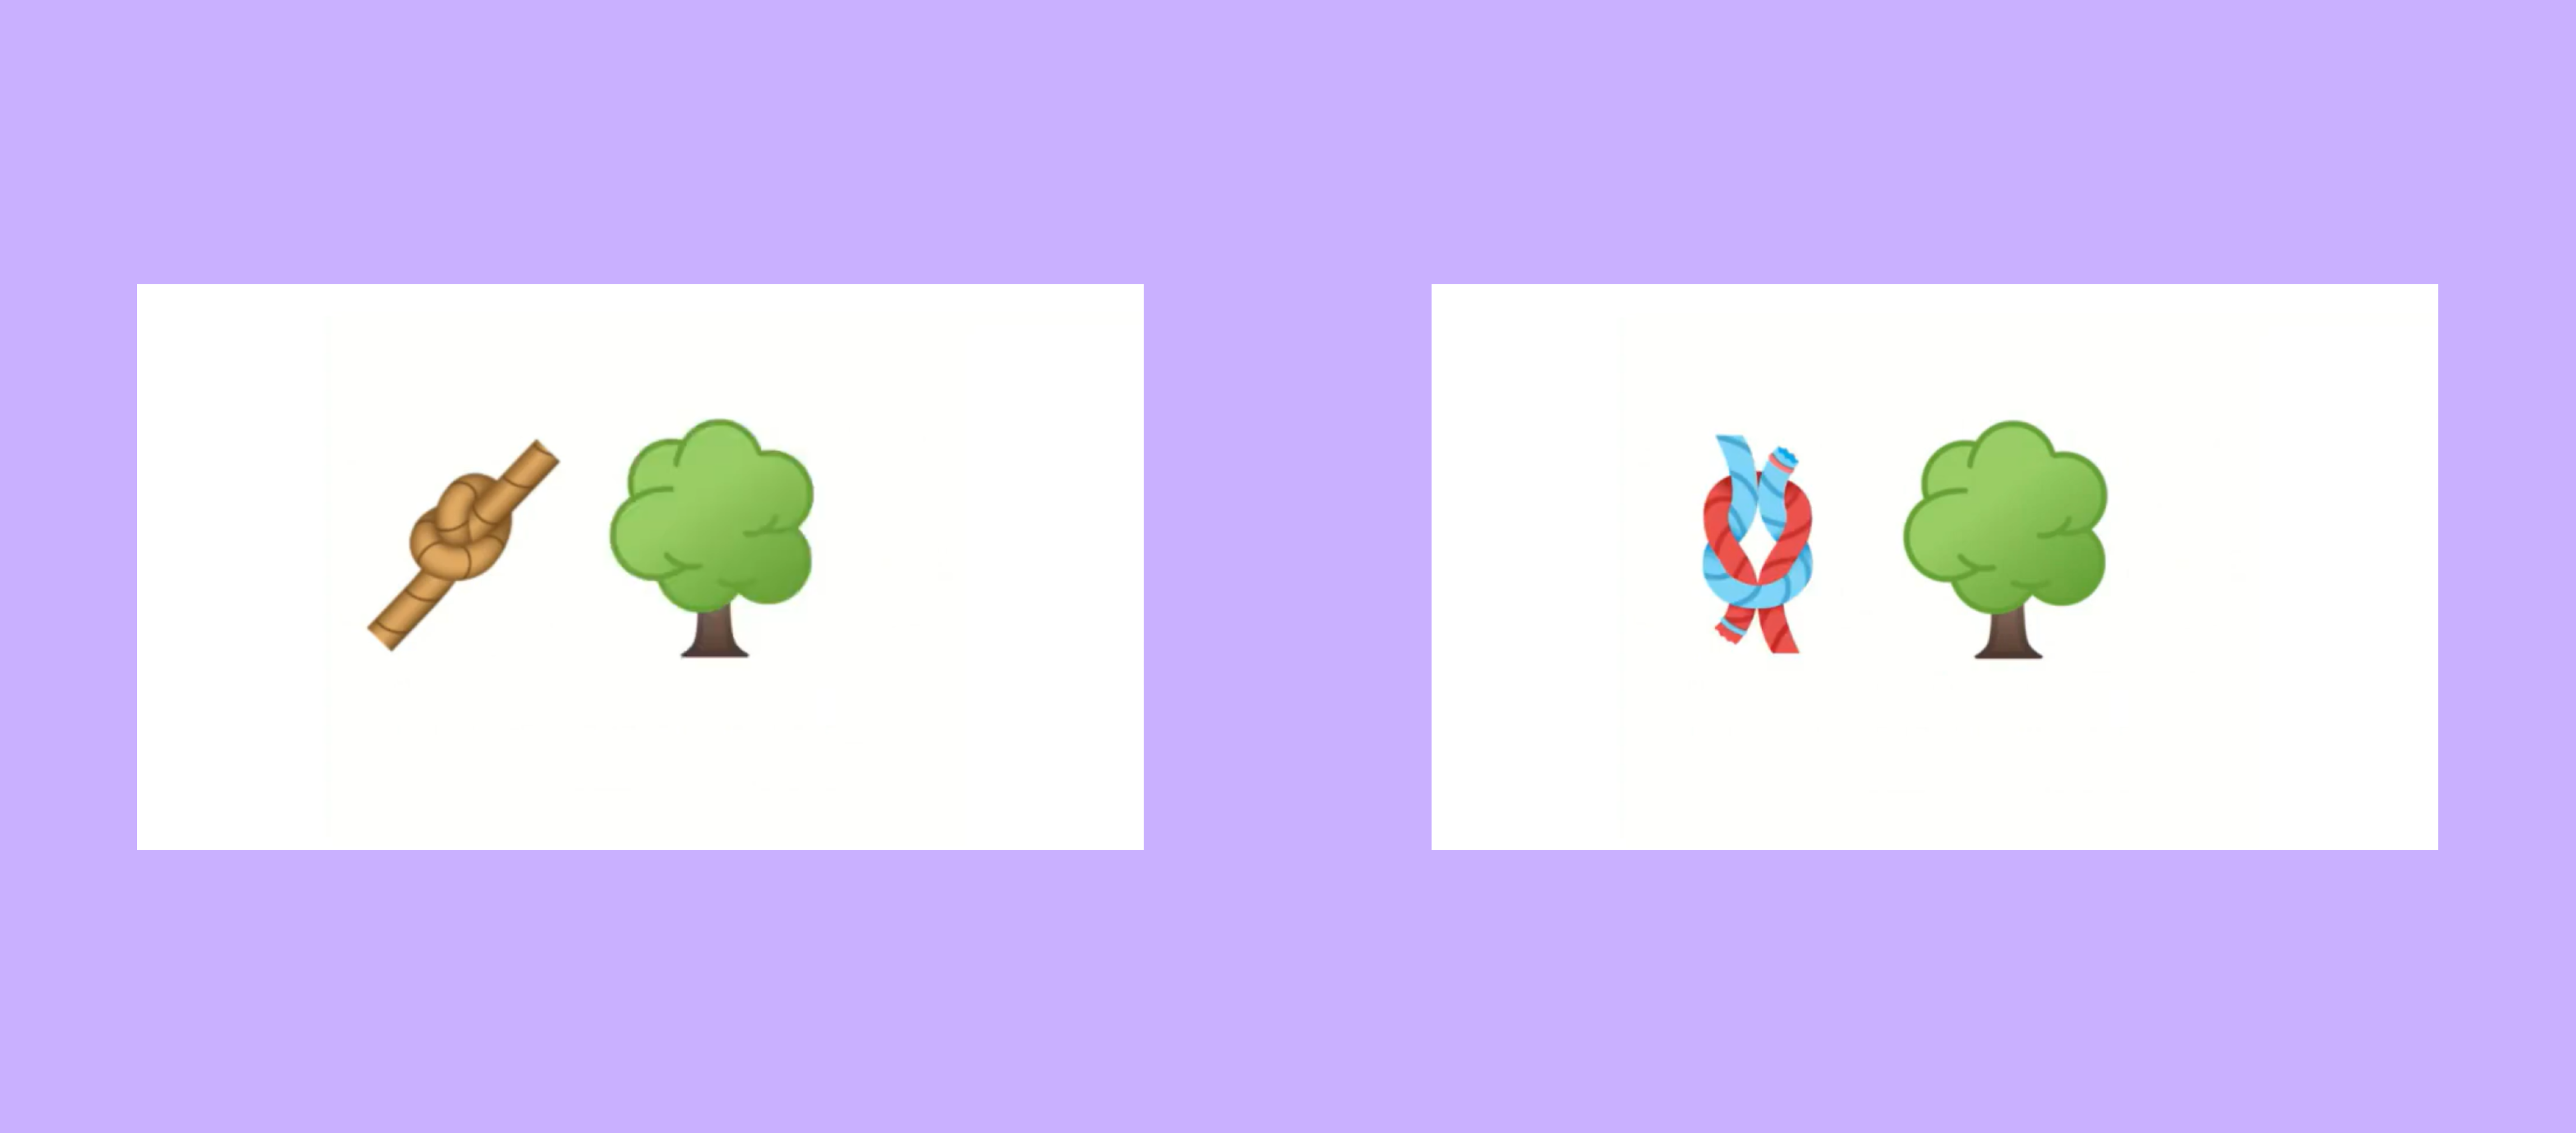 2 images: one of the old knot design next to a tree, and one of the new knot design next to a tree